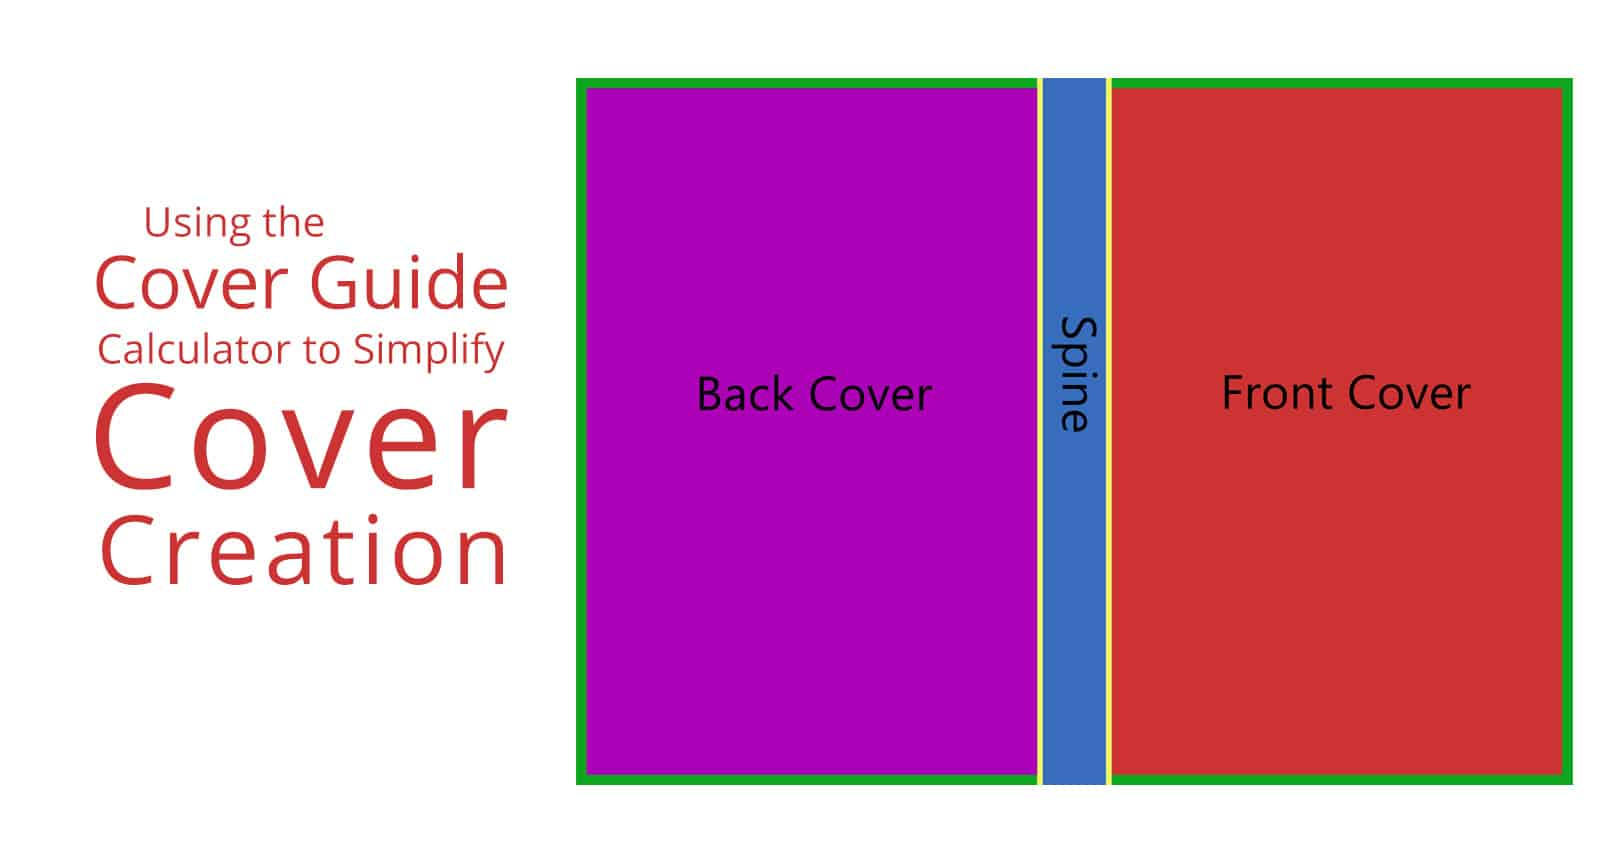 Using the Cover Guide Calculator to Simplify Cover Creation